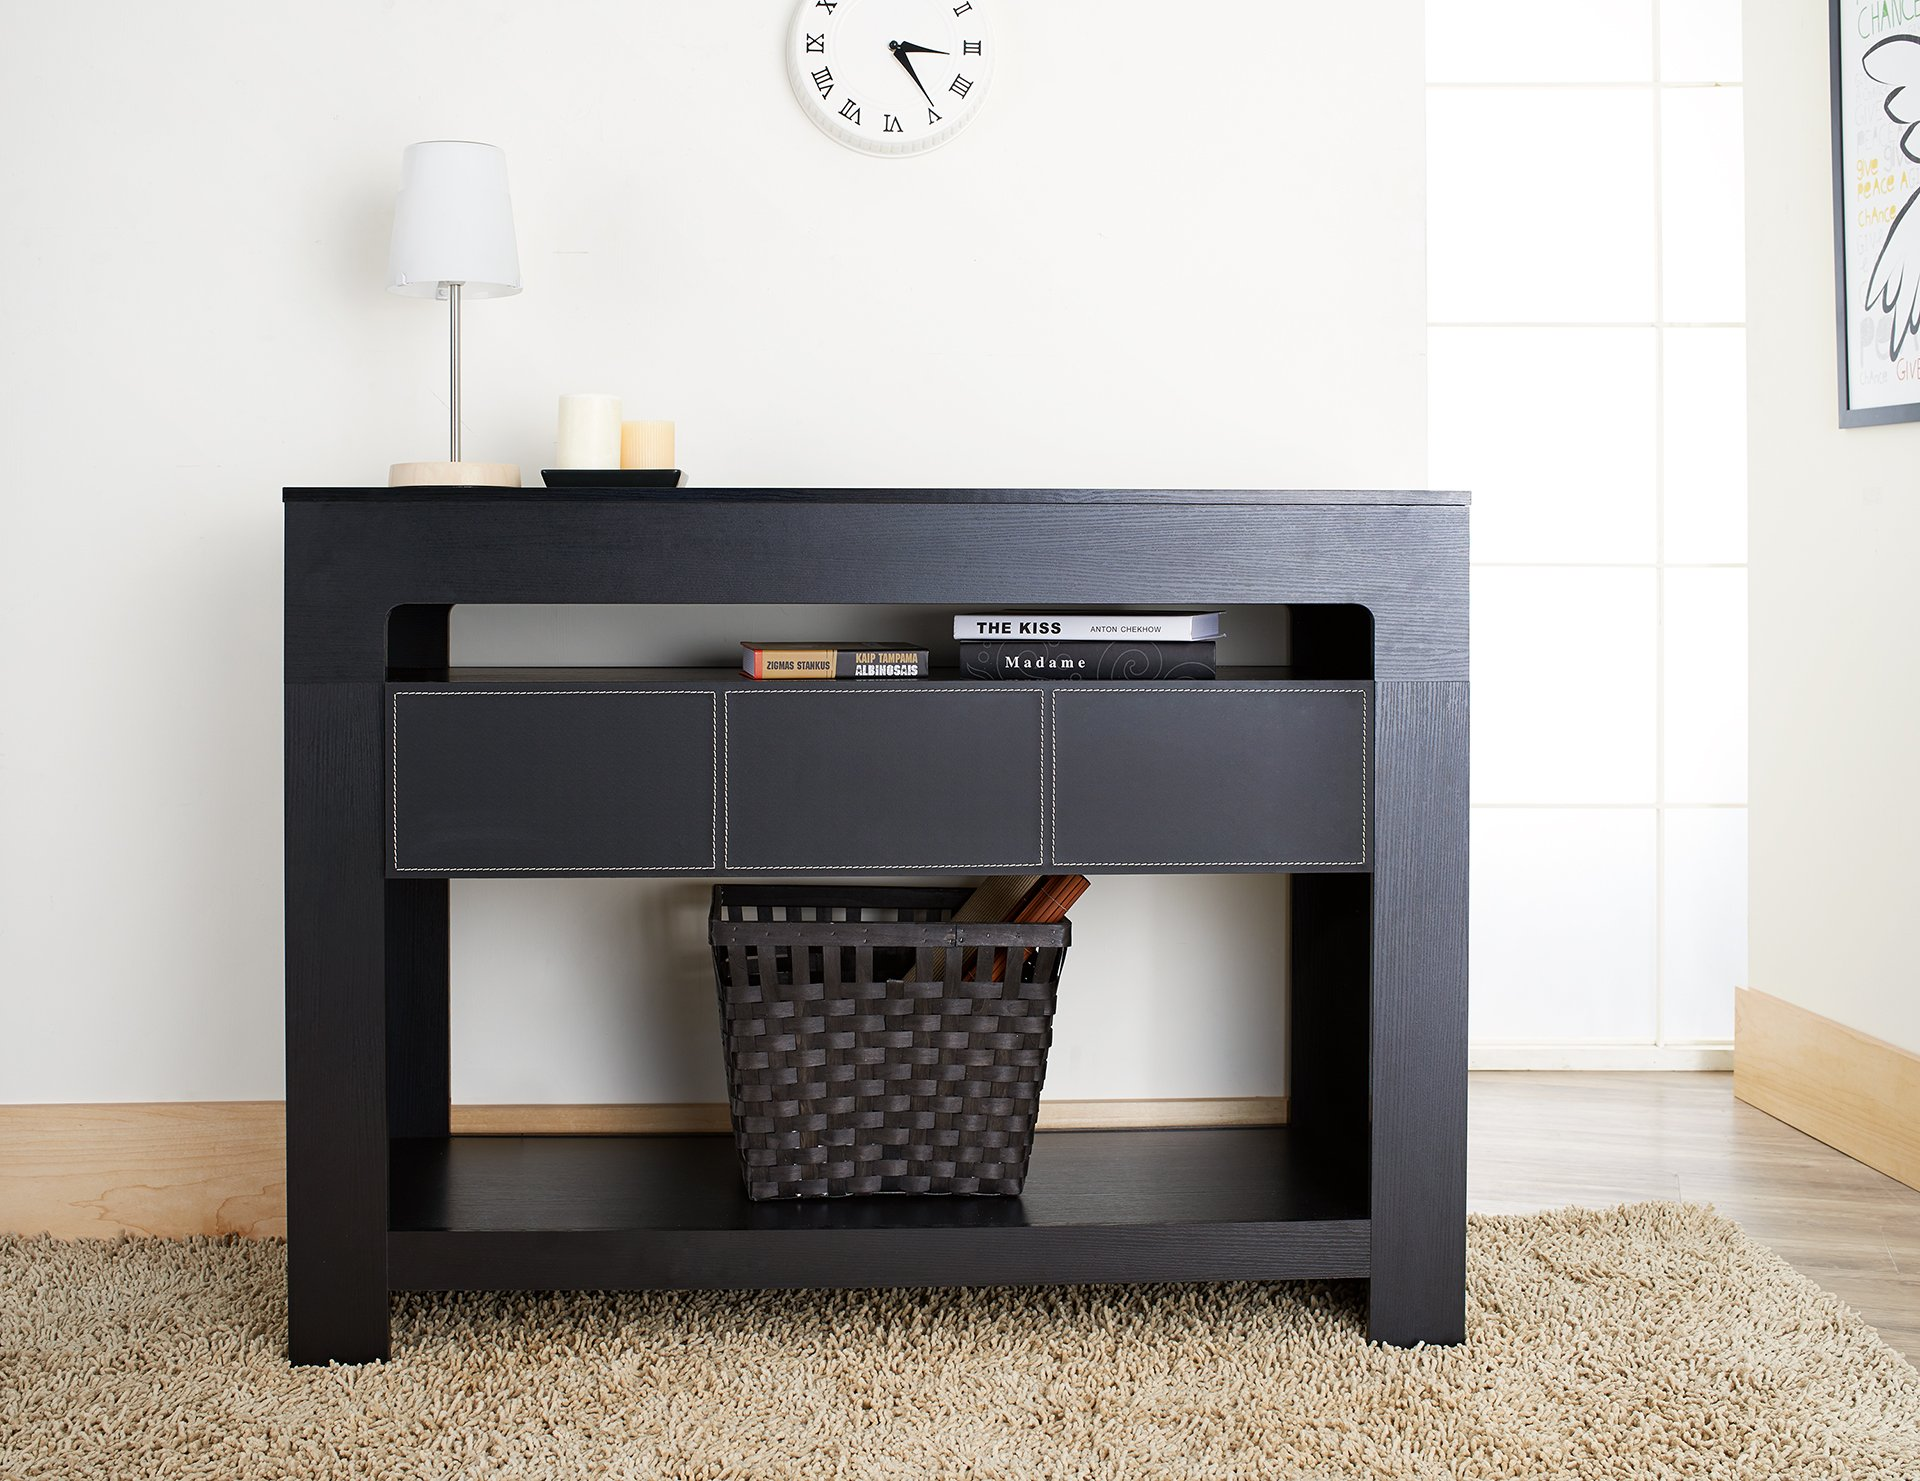 ioHOMES Lado Contemporary Console Table, Black by HOMES: Inside + Out (Image #2)